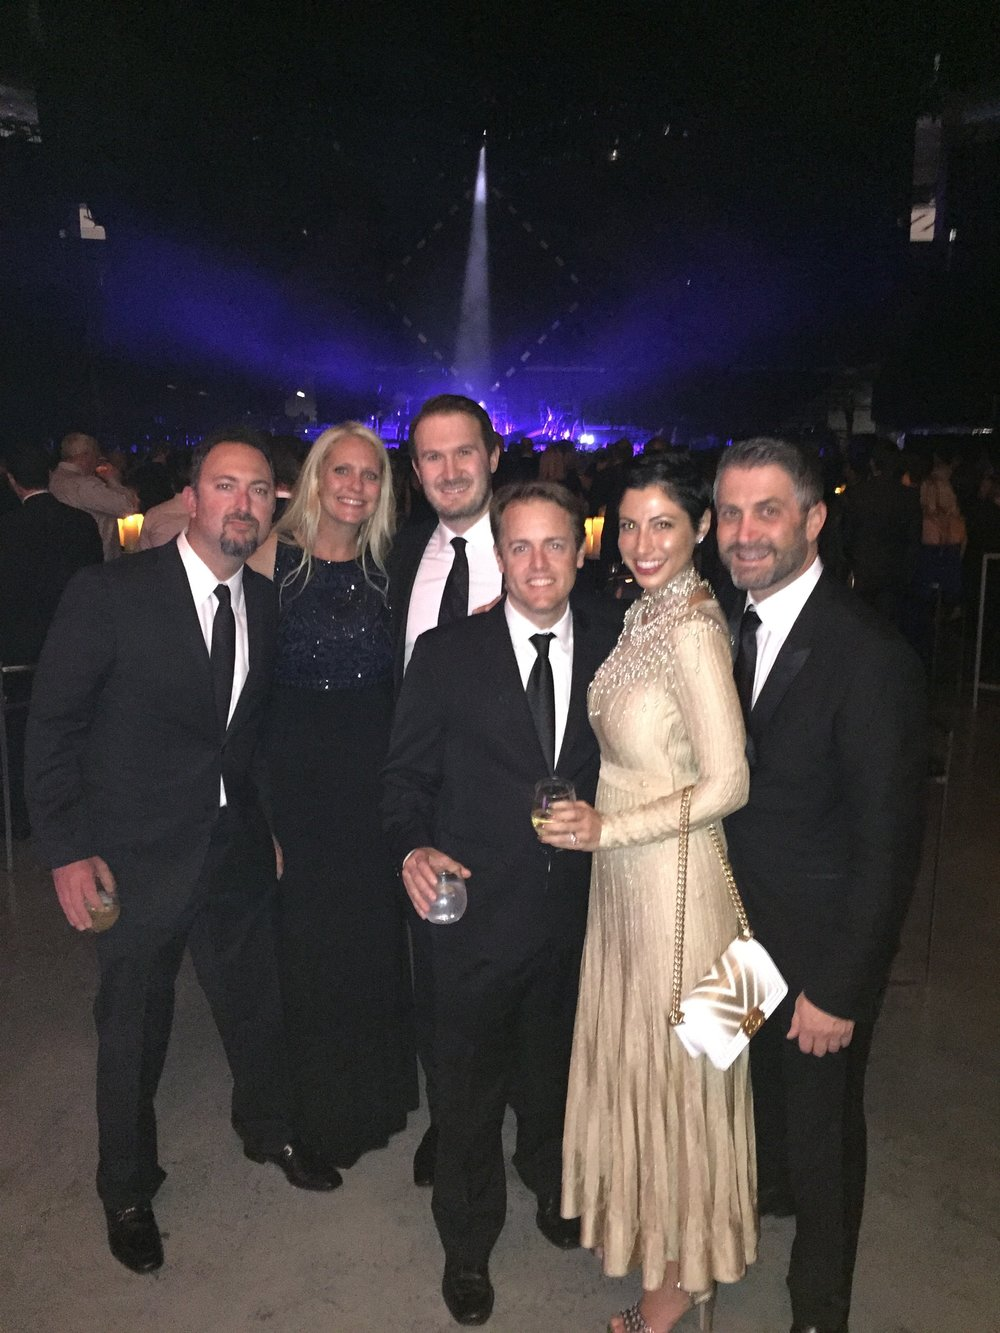 Chrisa Pappas with other guests at the Royal Gala 2016.